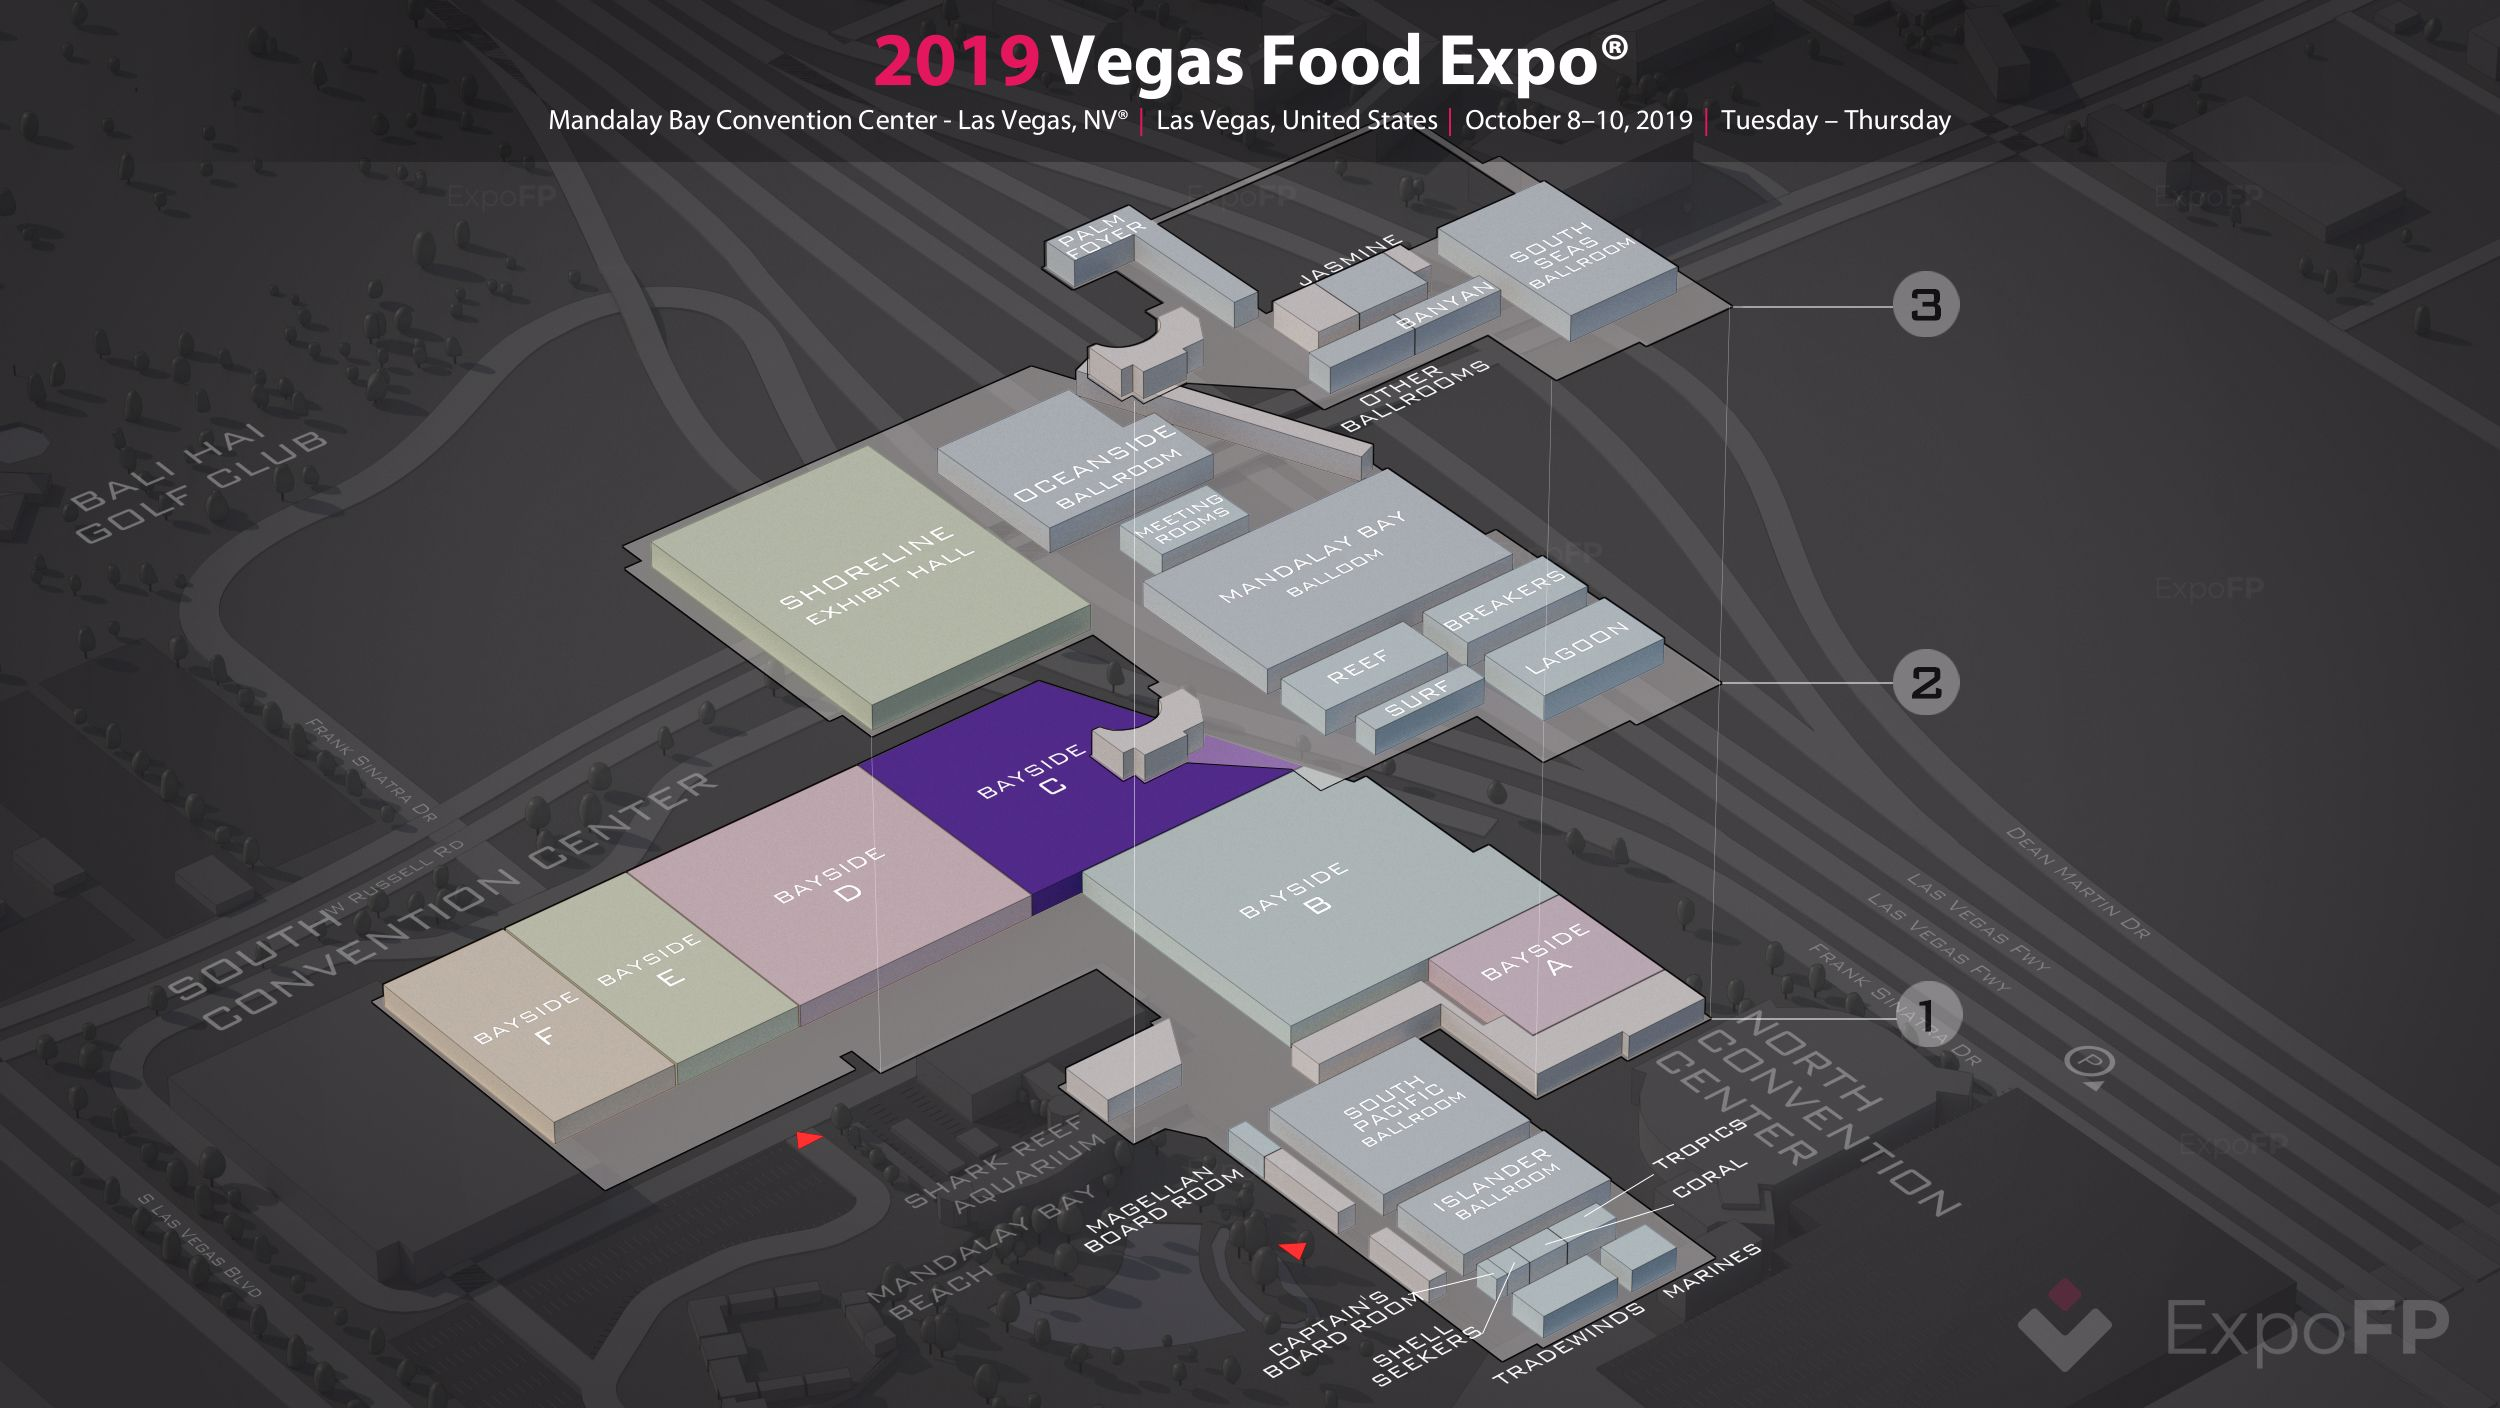 Vegas Food Expo 2019 in Mandalay Bay Convention Center